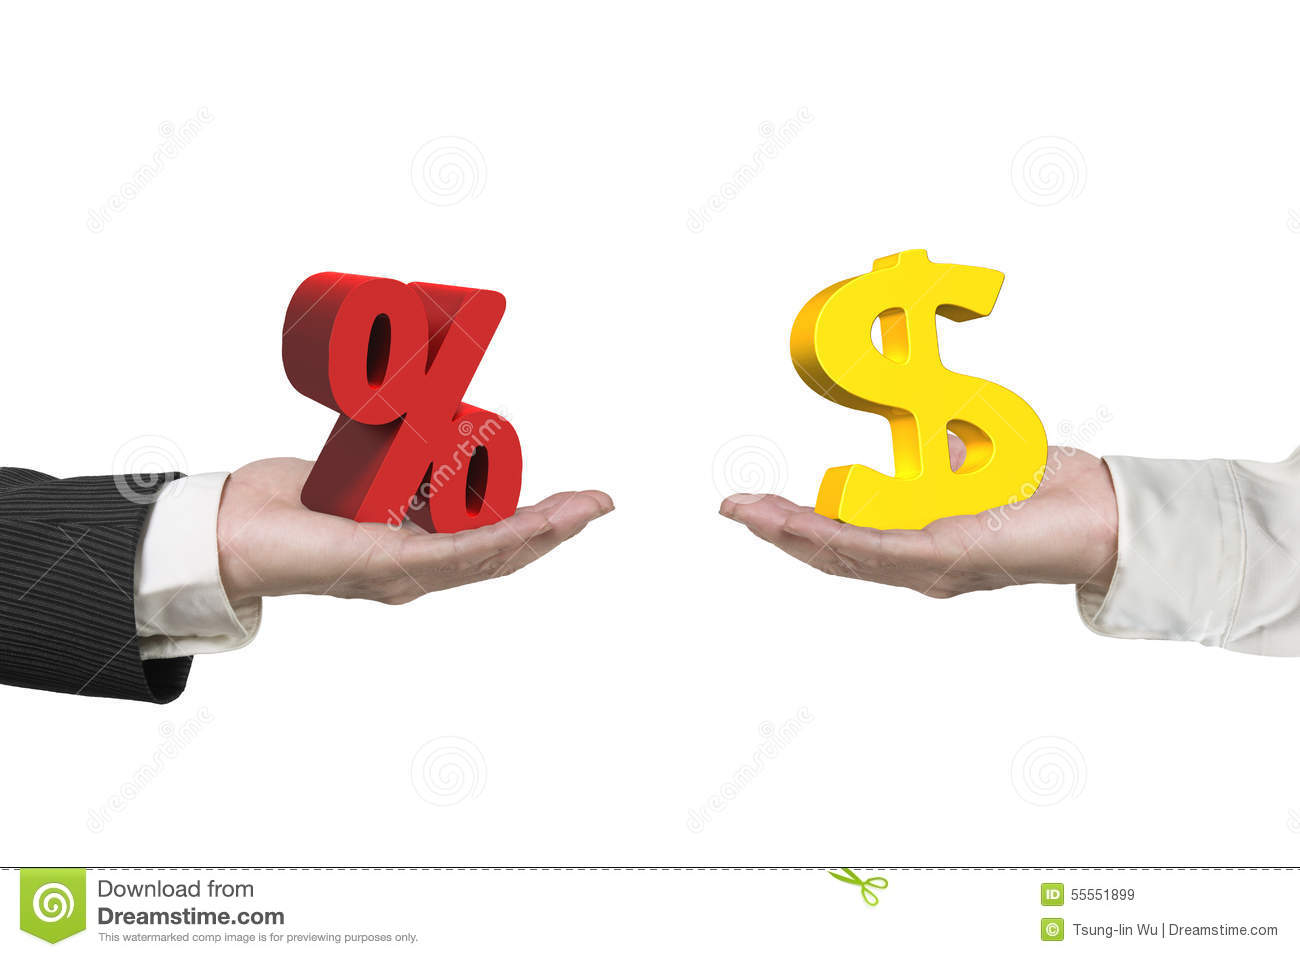 how to change percent to dollars